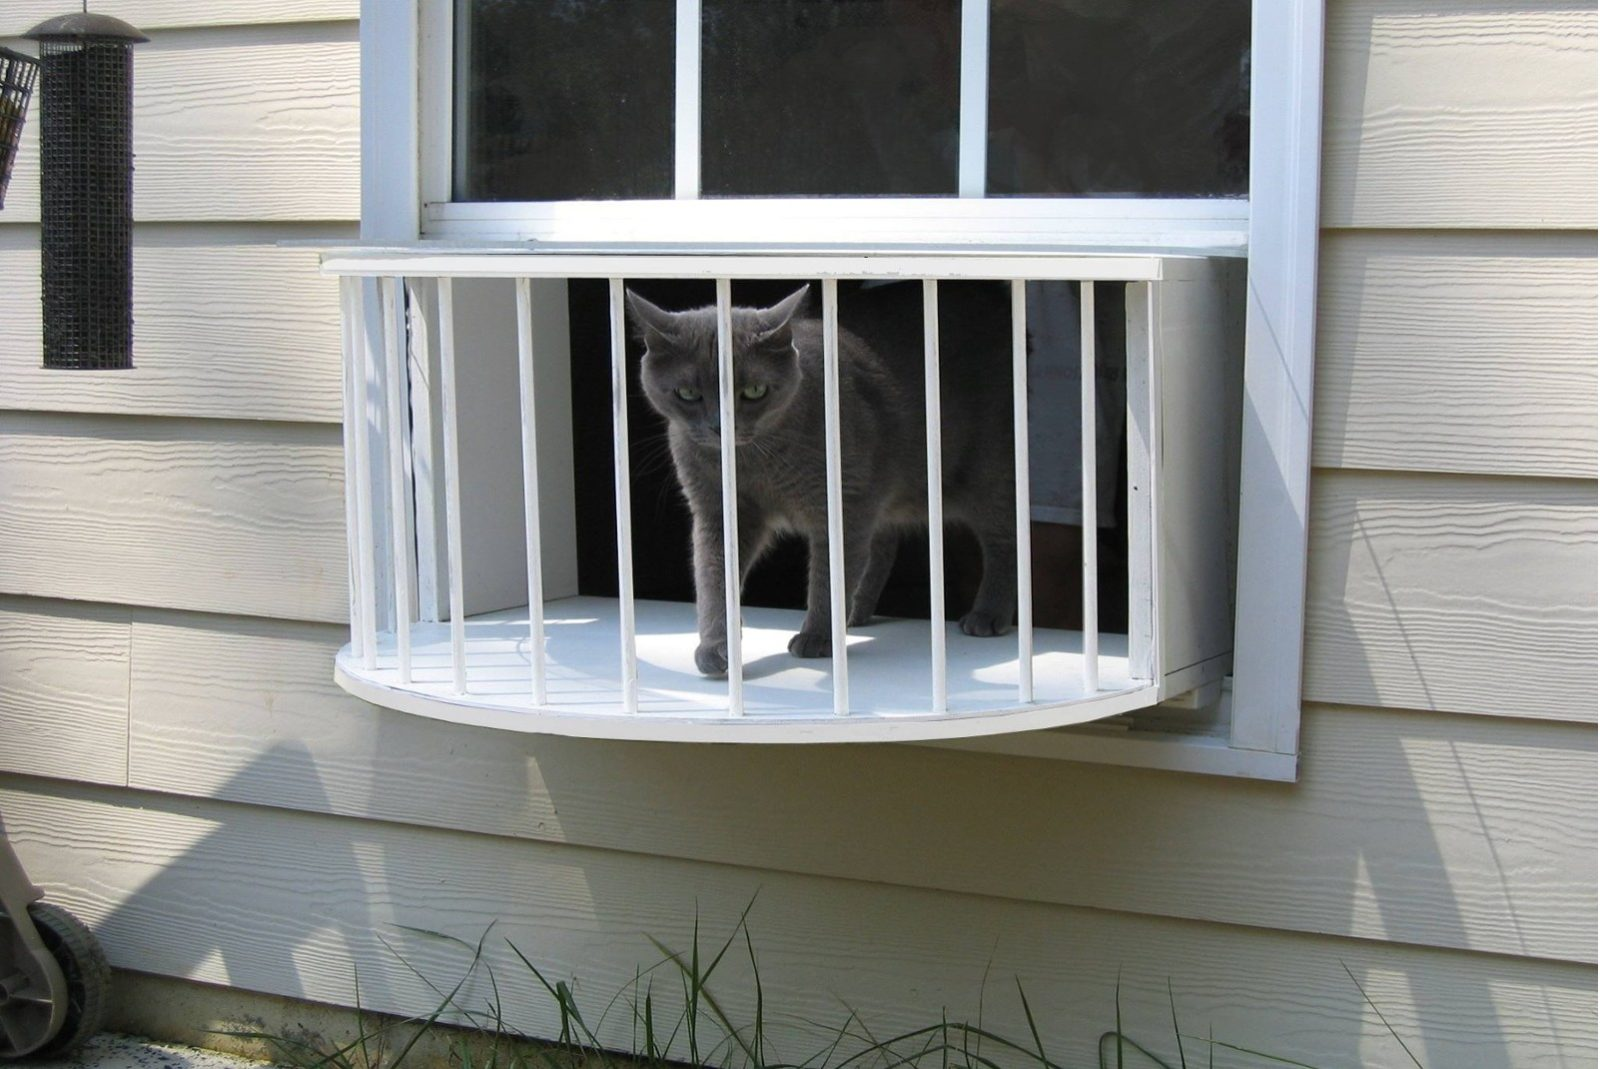 Amazing Cat Perch, Cat Solarium, Cat Window Box, Cat Window Door, Cat Window Perch,  Cat Veranda, Cat Window Bed, Cat Window Seat, Modern Cat Perch, Cat  Windowsill ...